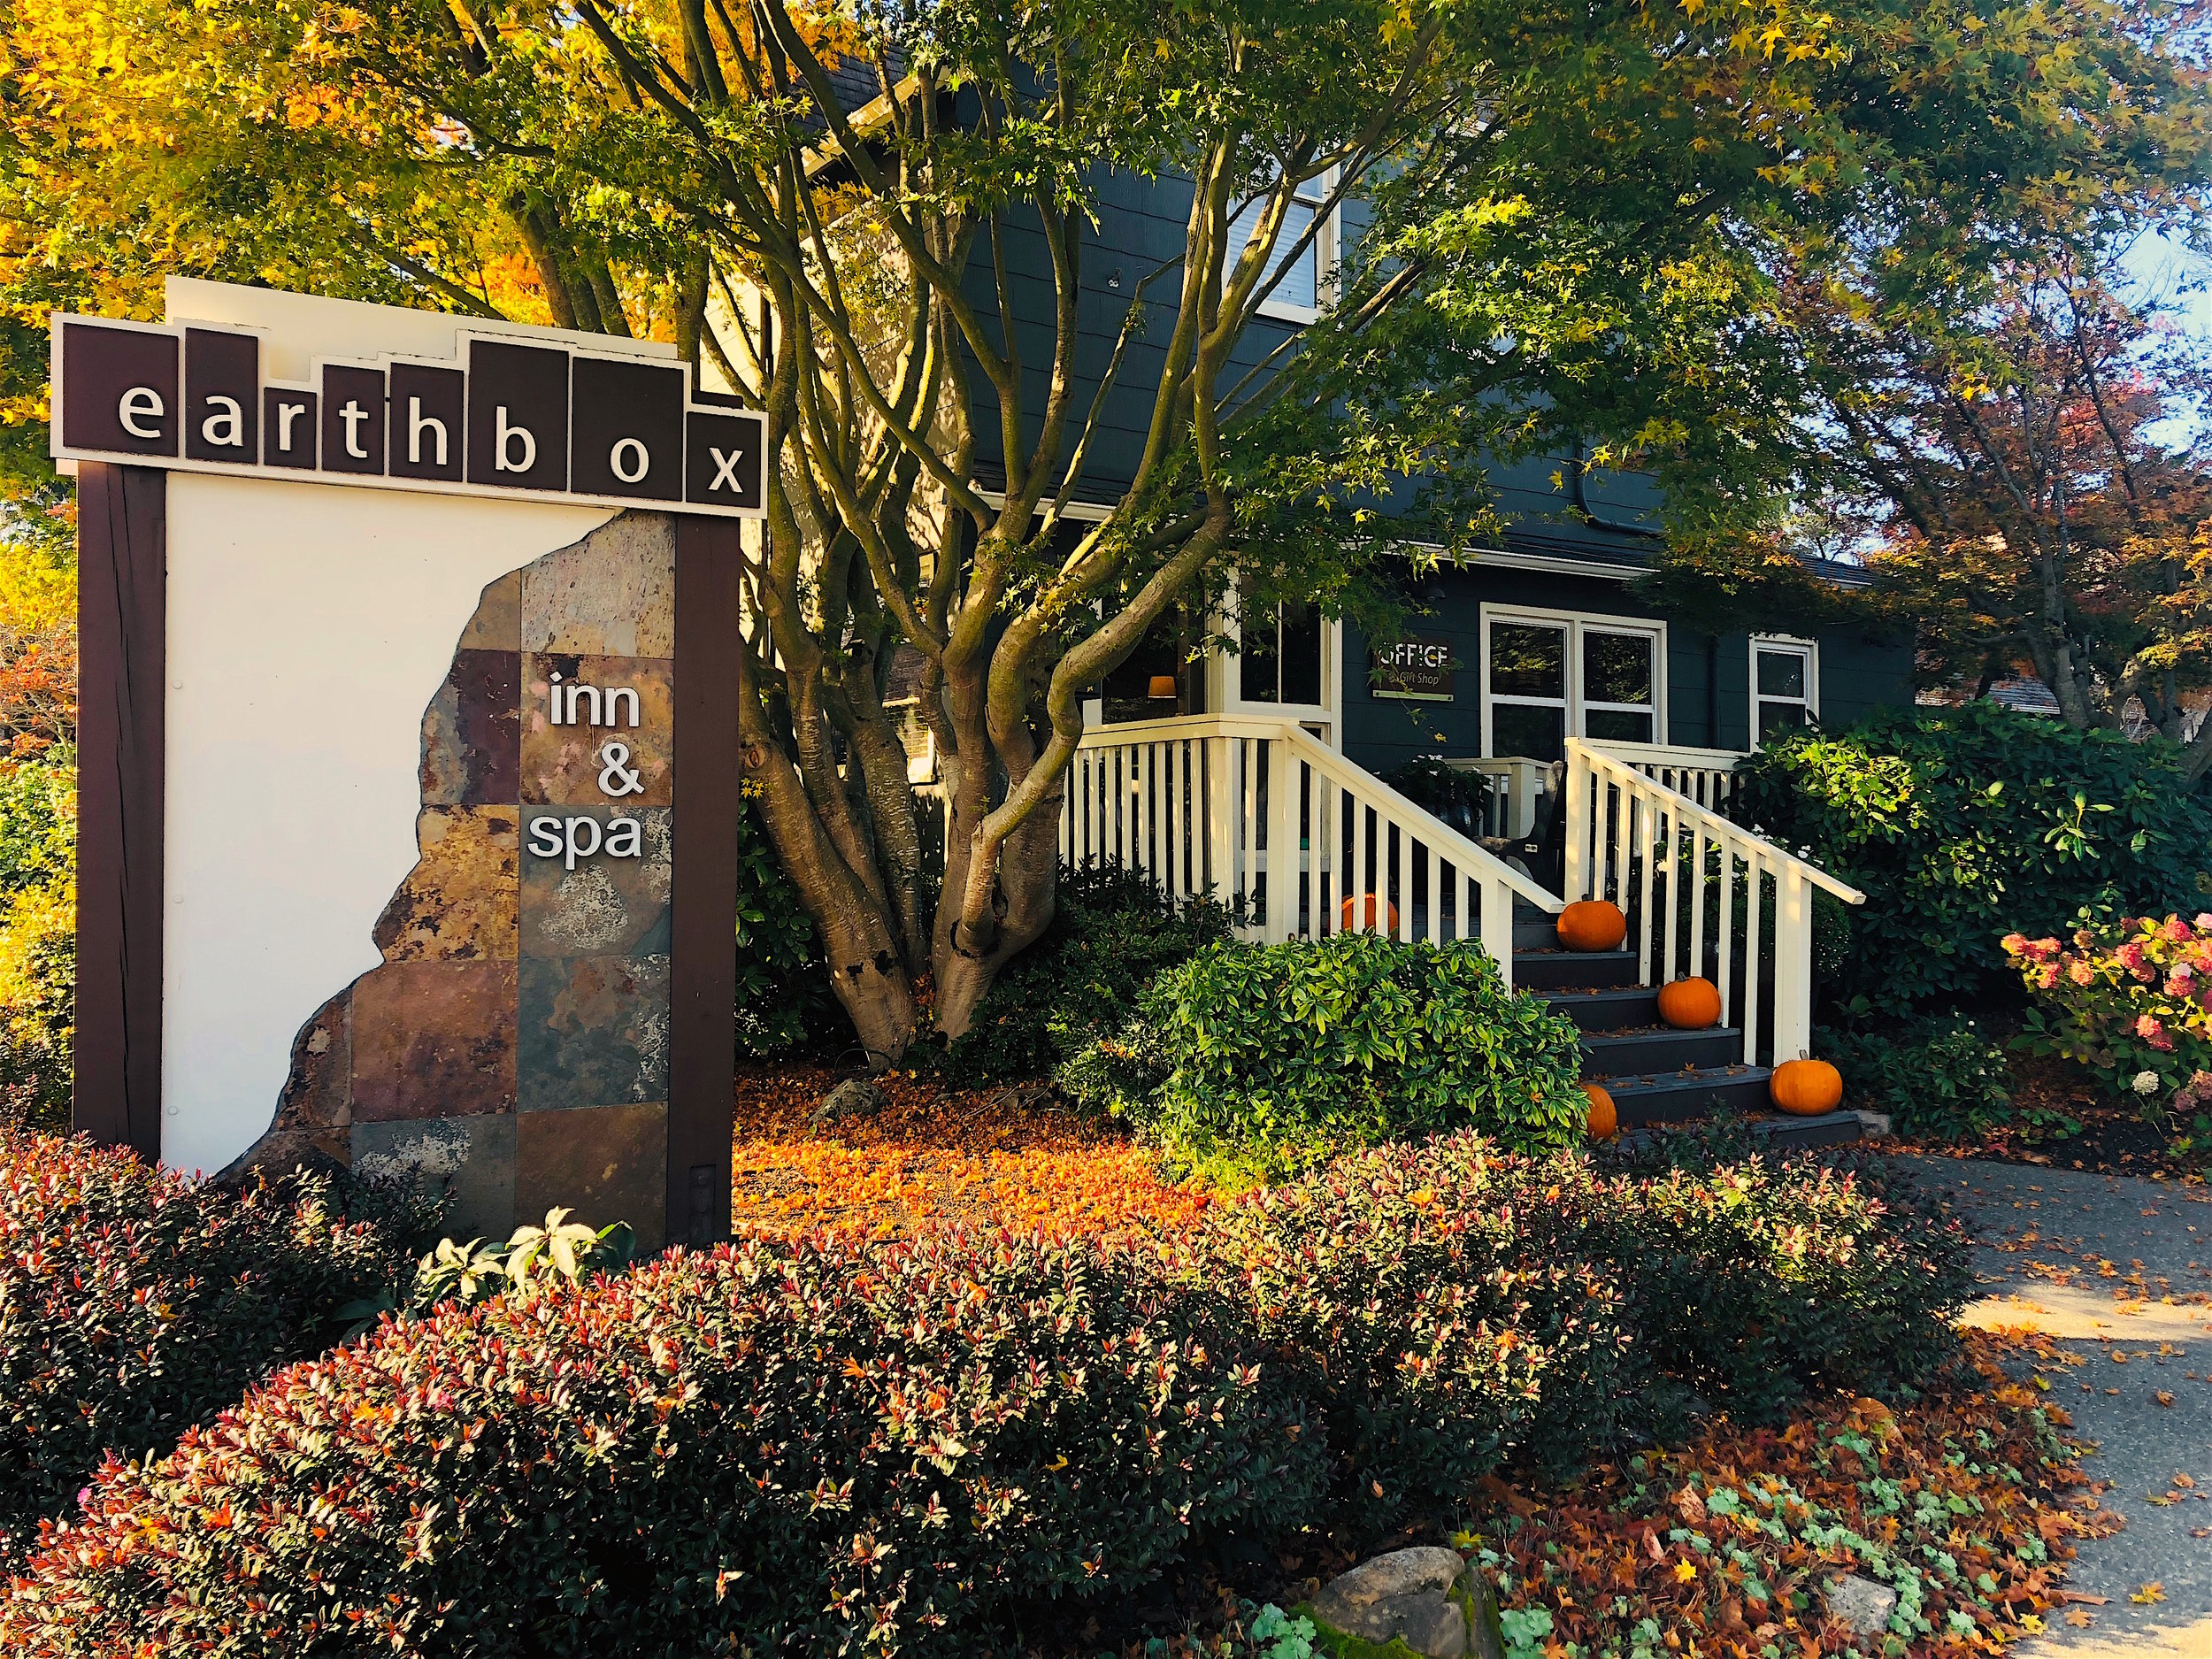 The Earthbox Inn & Spa is the only hotel on San Juan Island with an indoor heated pool